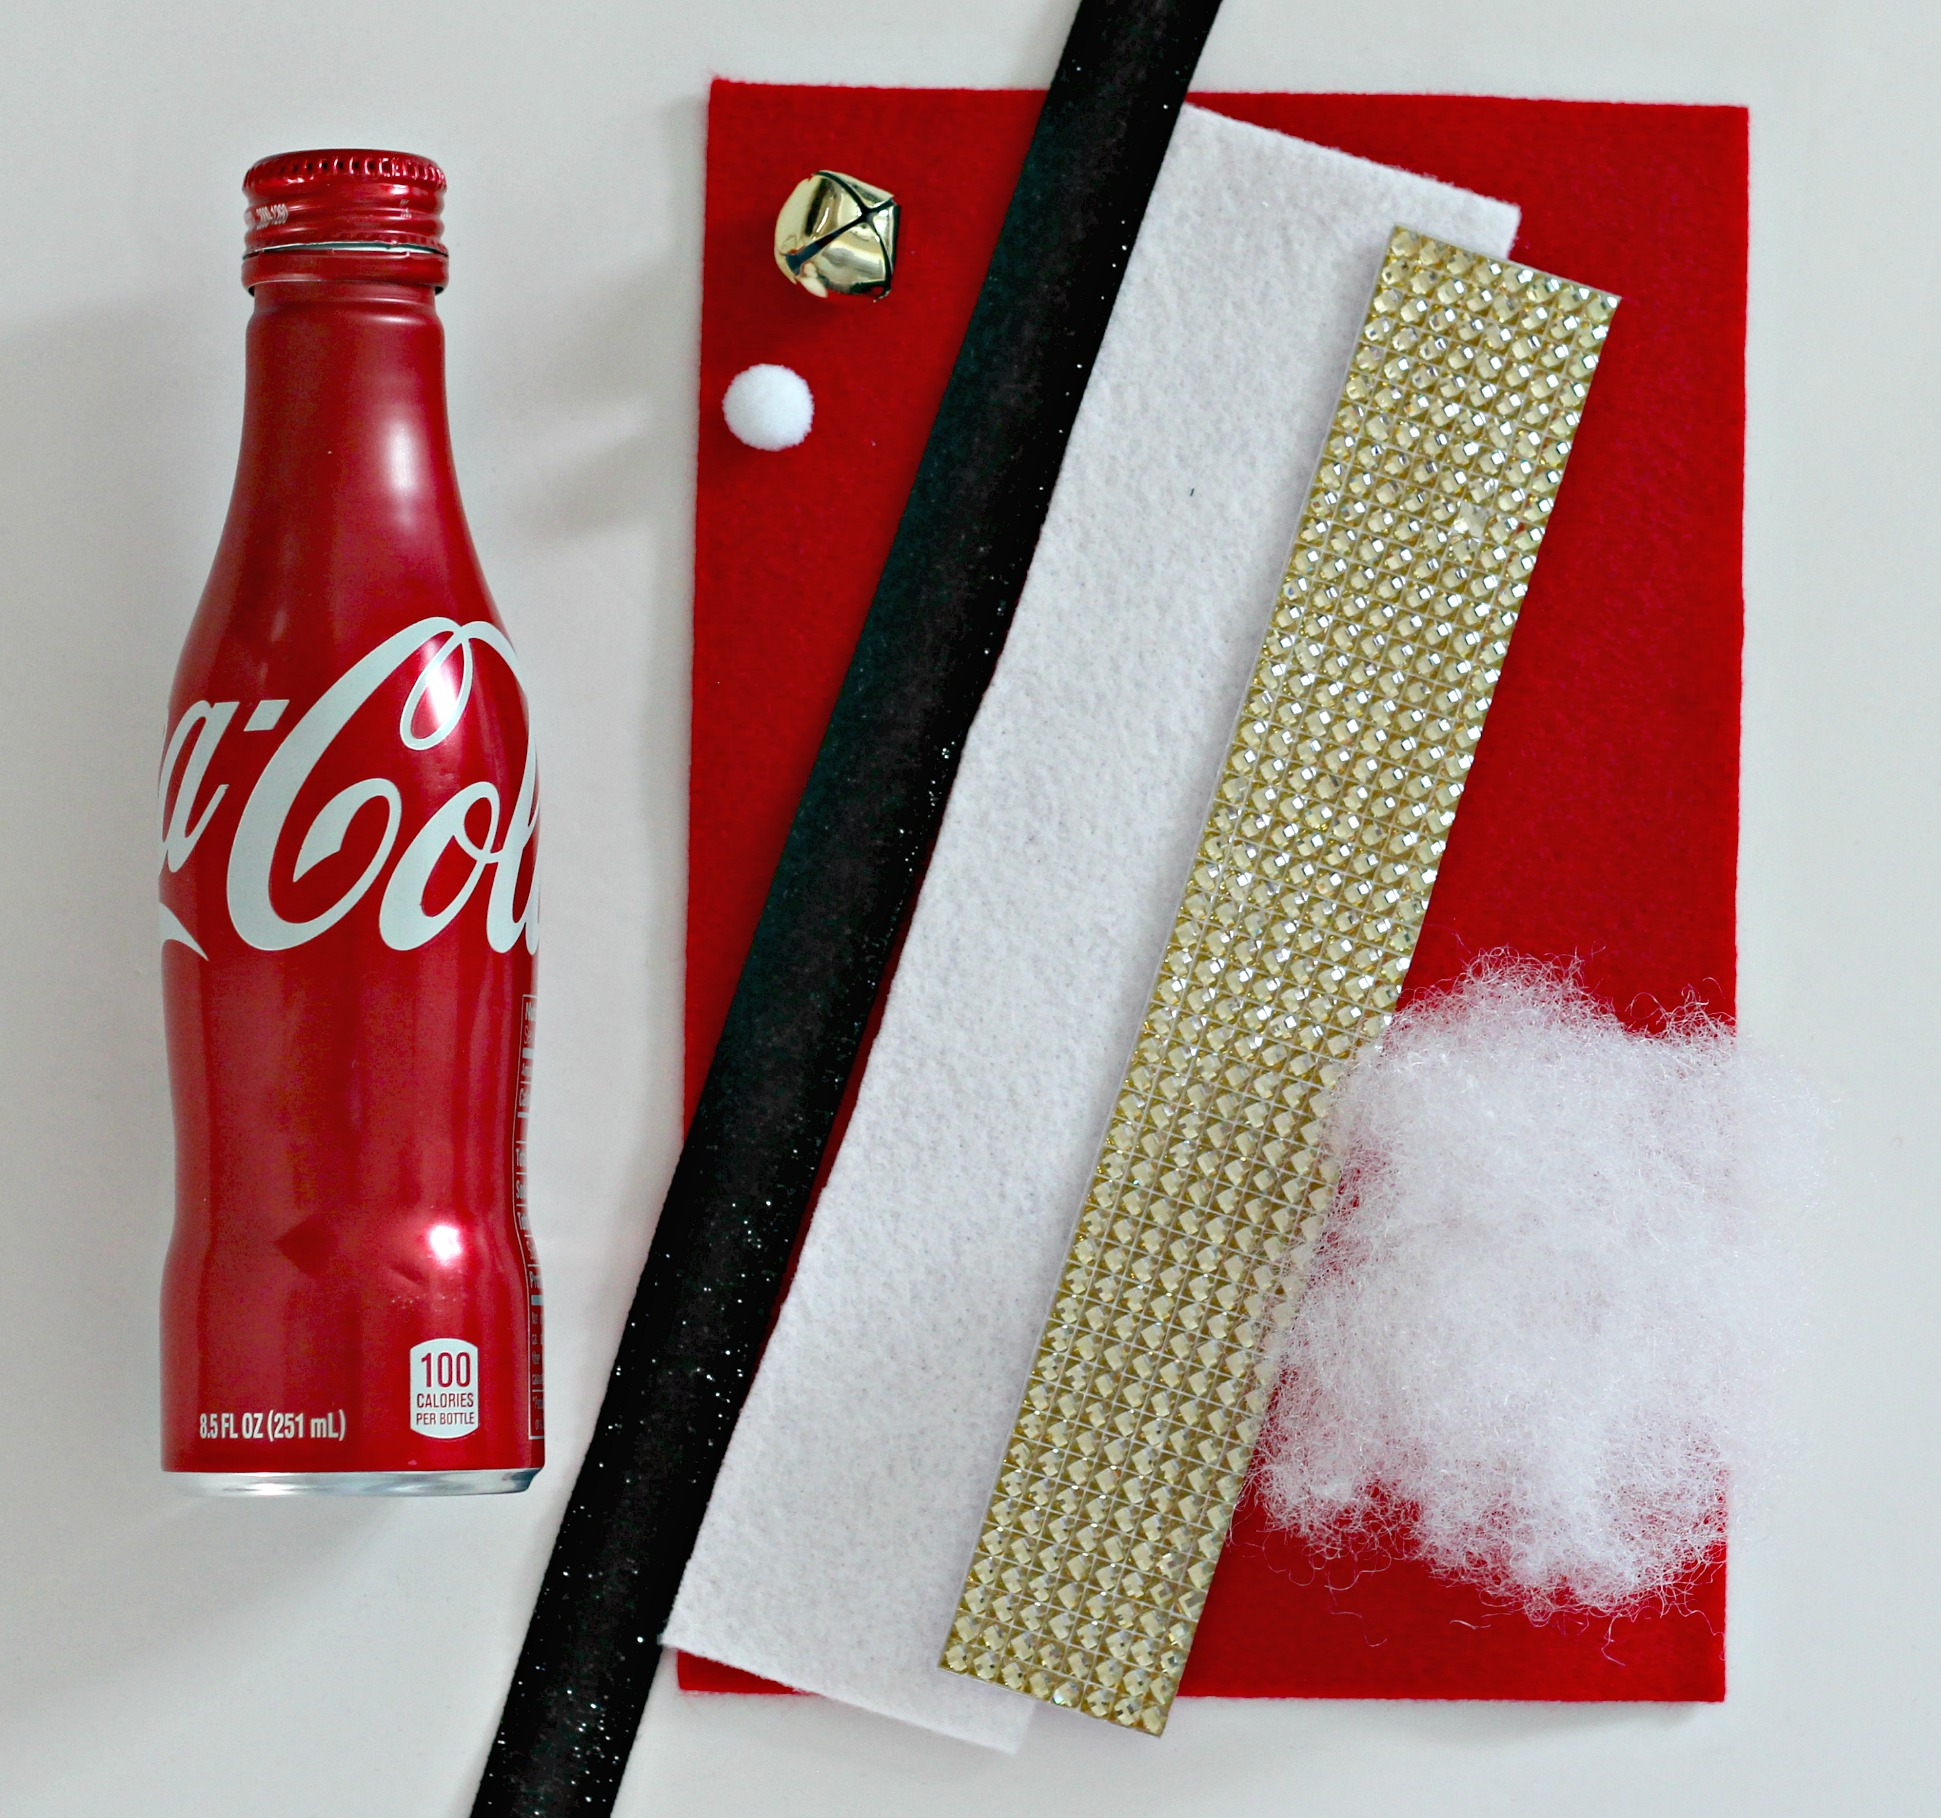 Coca-Cola Bottle Ornaments - Organize and Decorate Everything